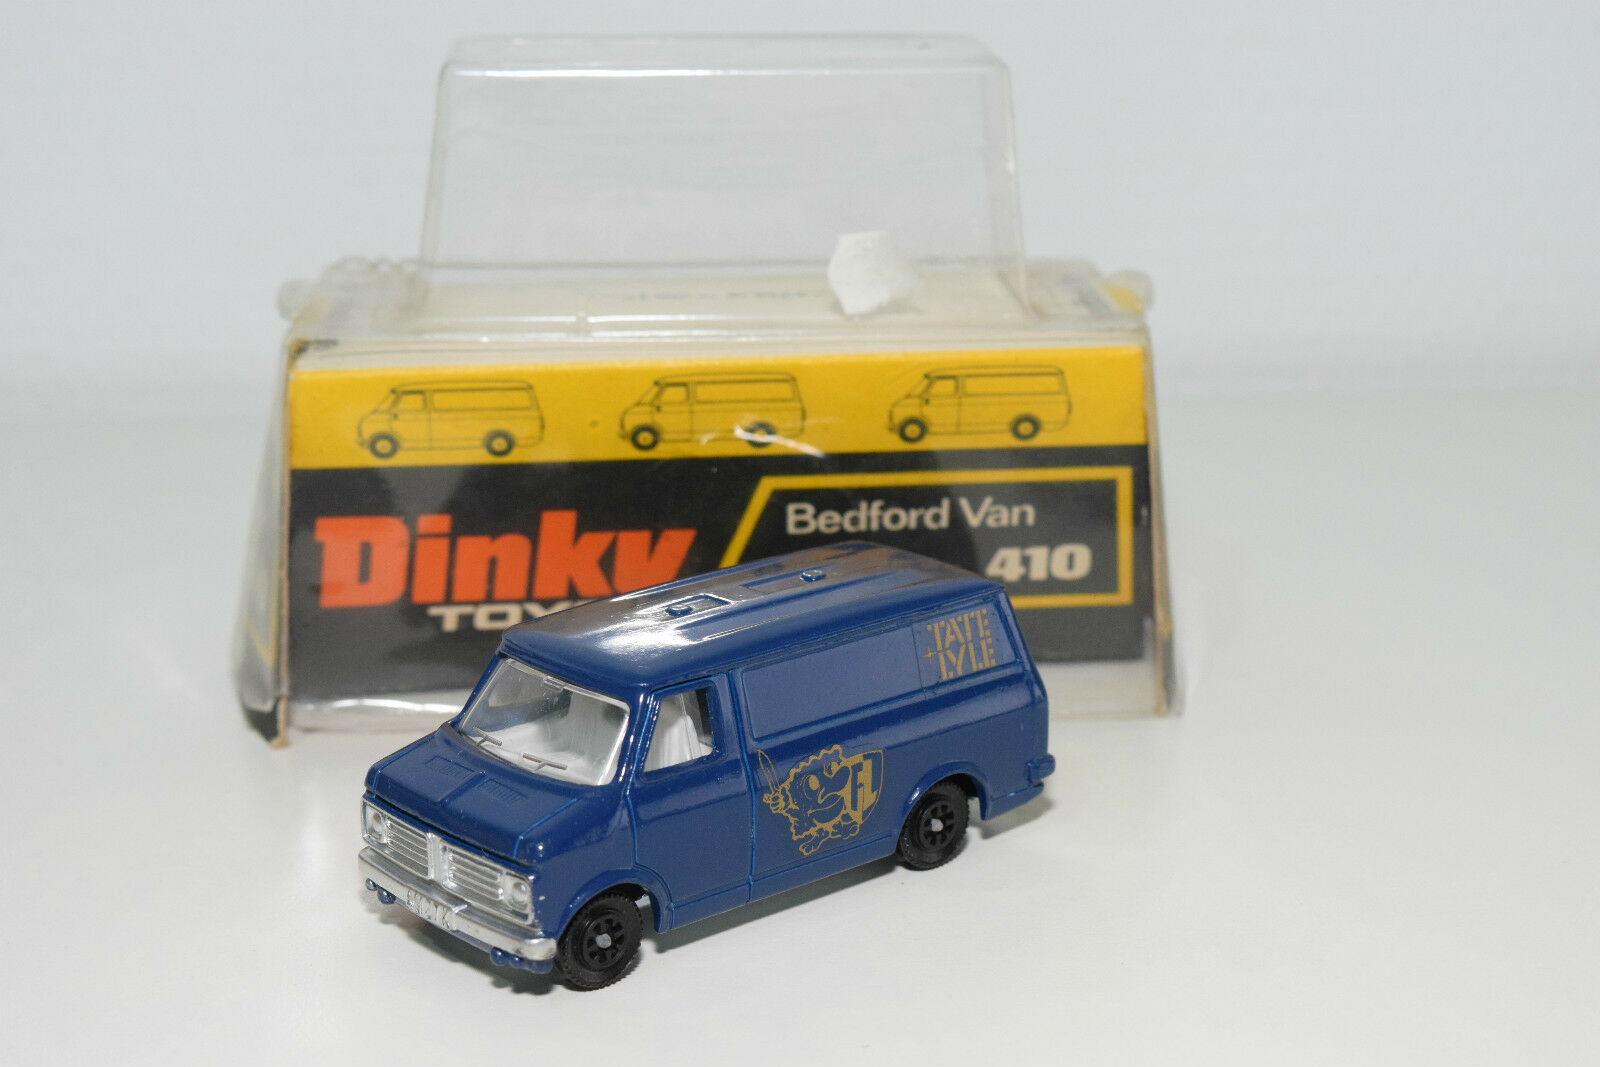 DINKY TOYS 410 BEDFORD AA VAN TATE LYLE MINT BOXED RARE SELTEN JOHN GAY